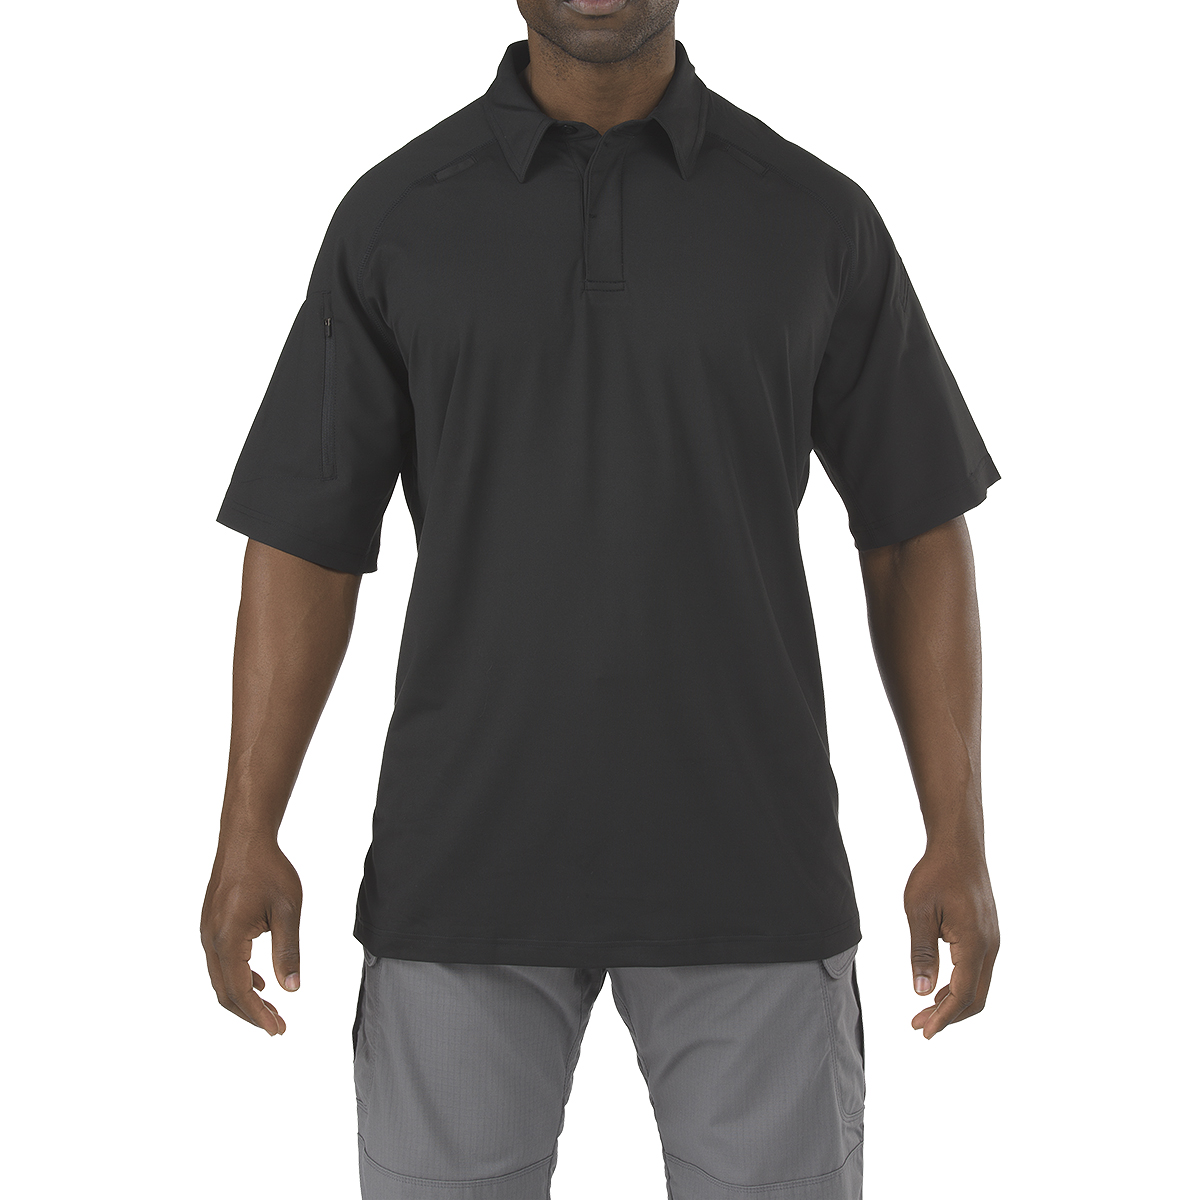 Shop our collection of men's polo shirts, long sleeve polos, casual polos, sport polos, and much more. Free shipping on orders over $